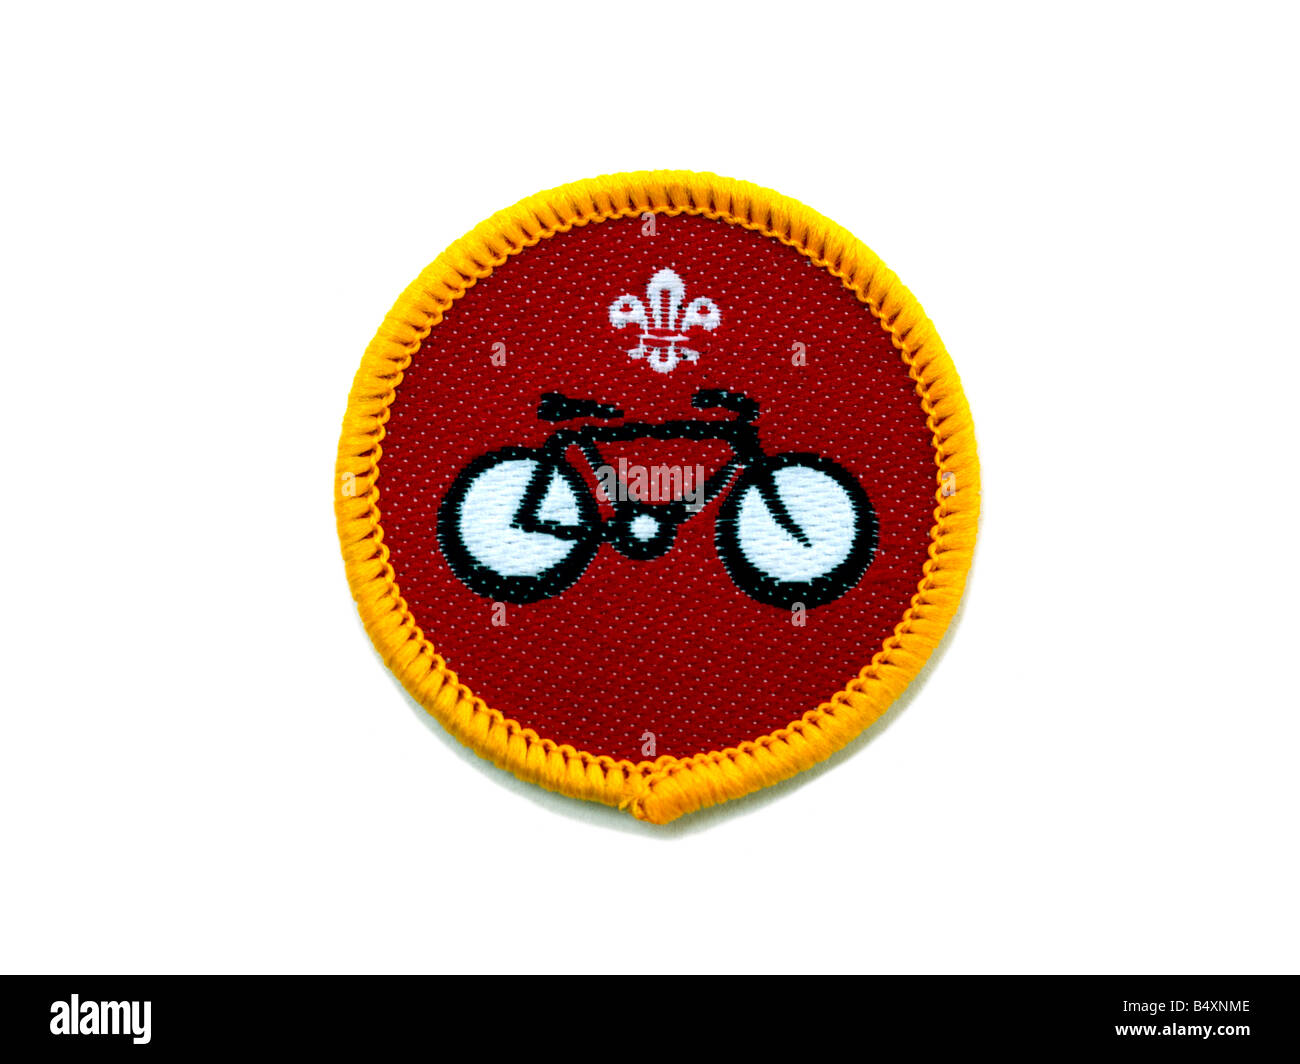 Cyclist Cub Badge - Stock Image